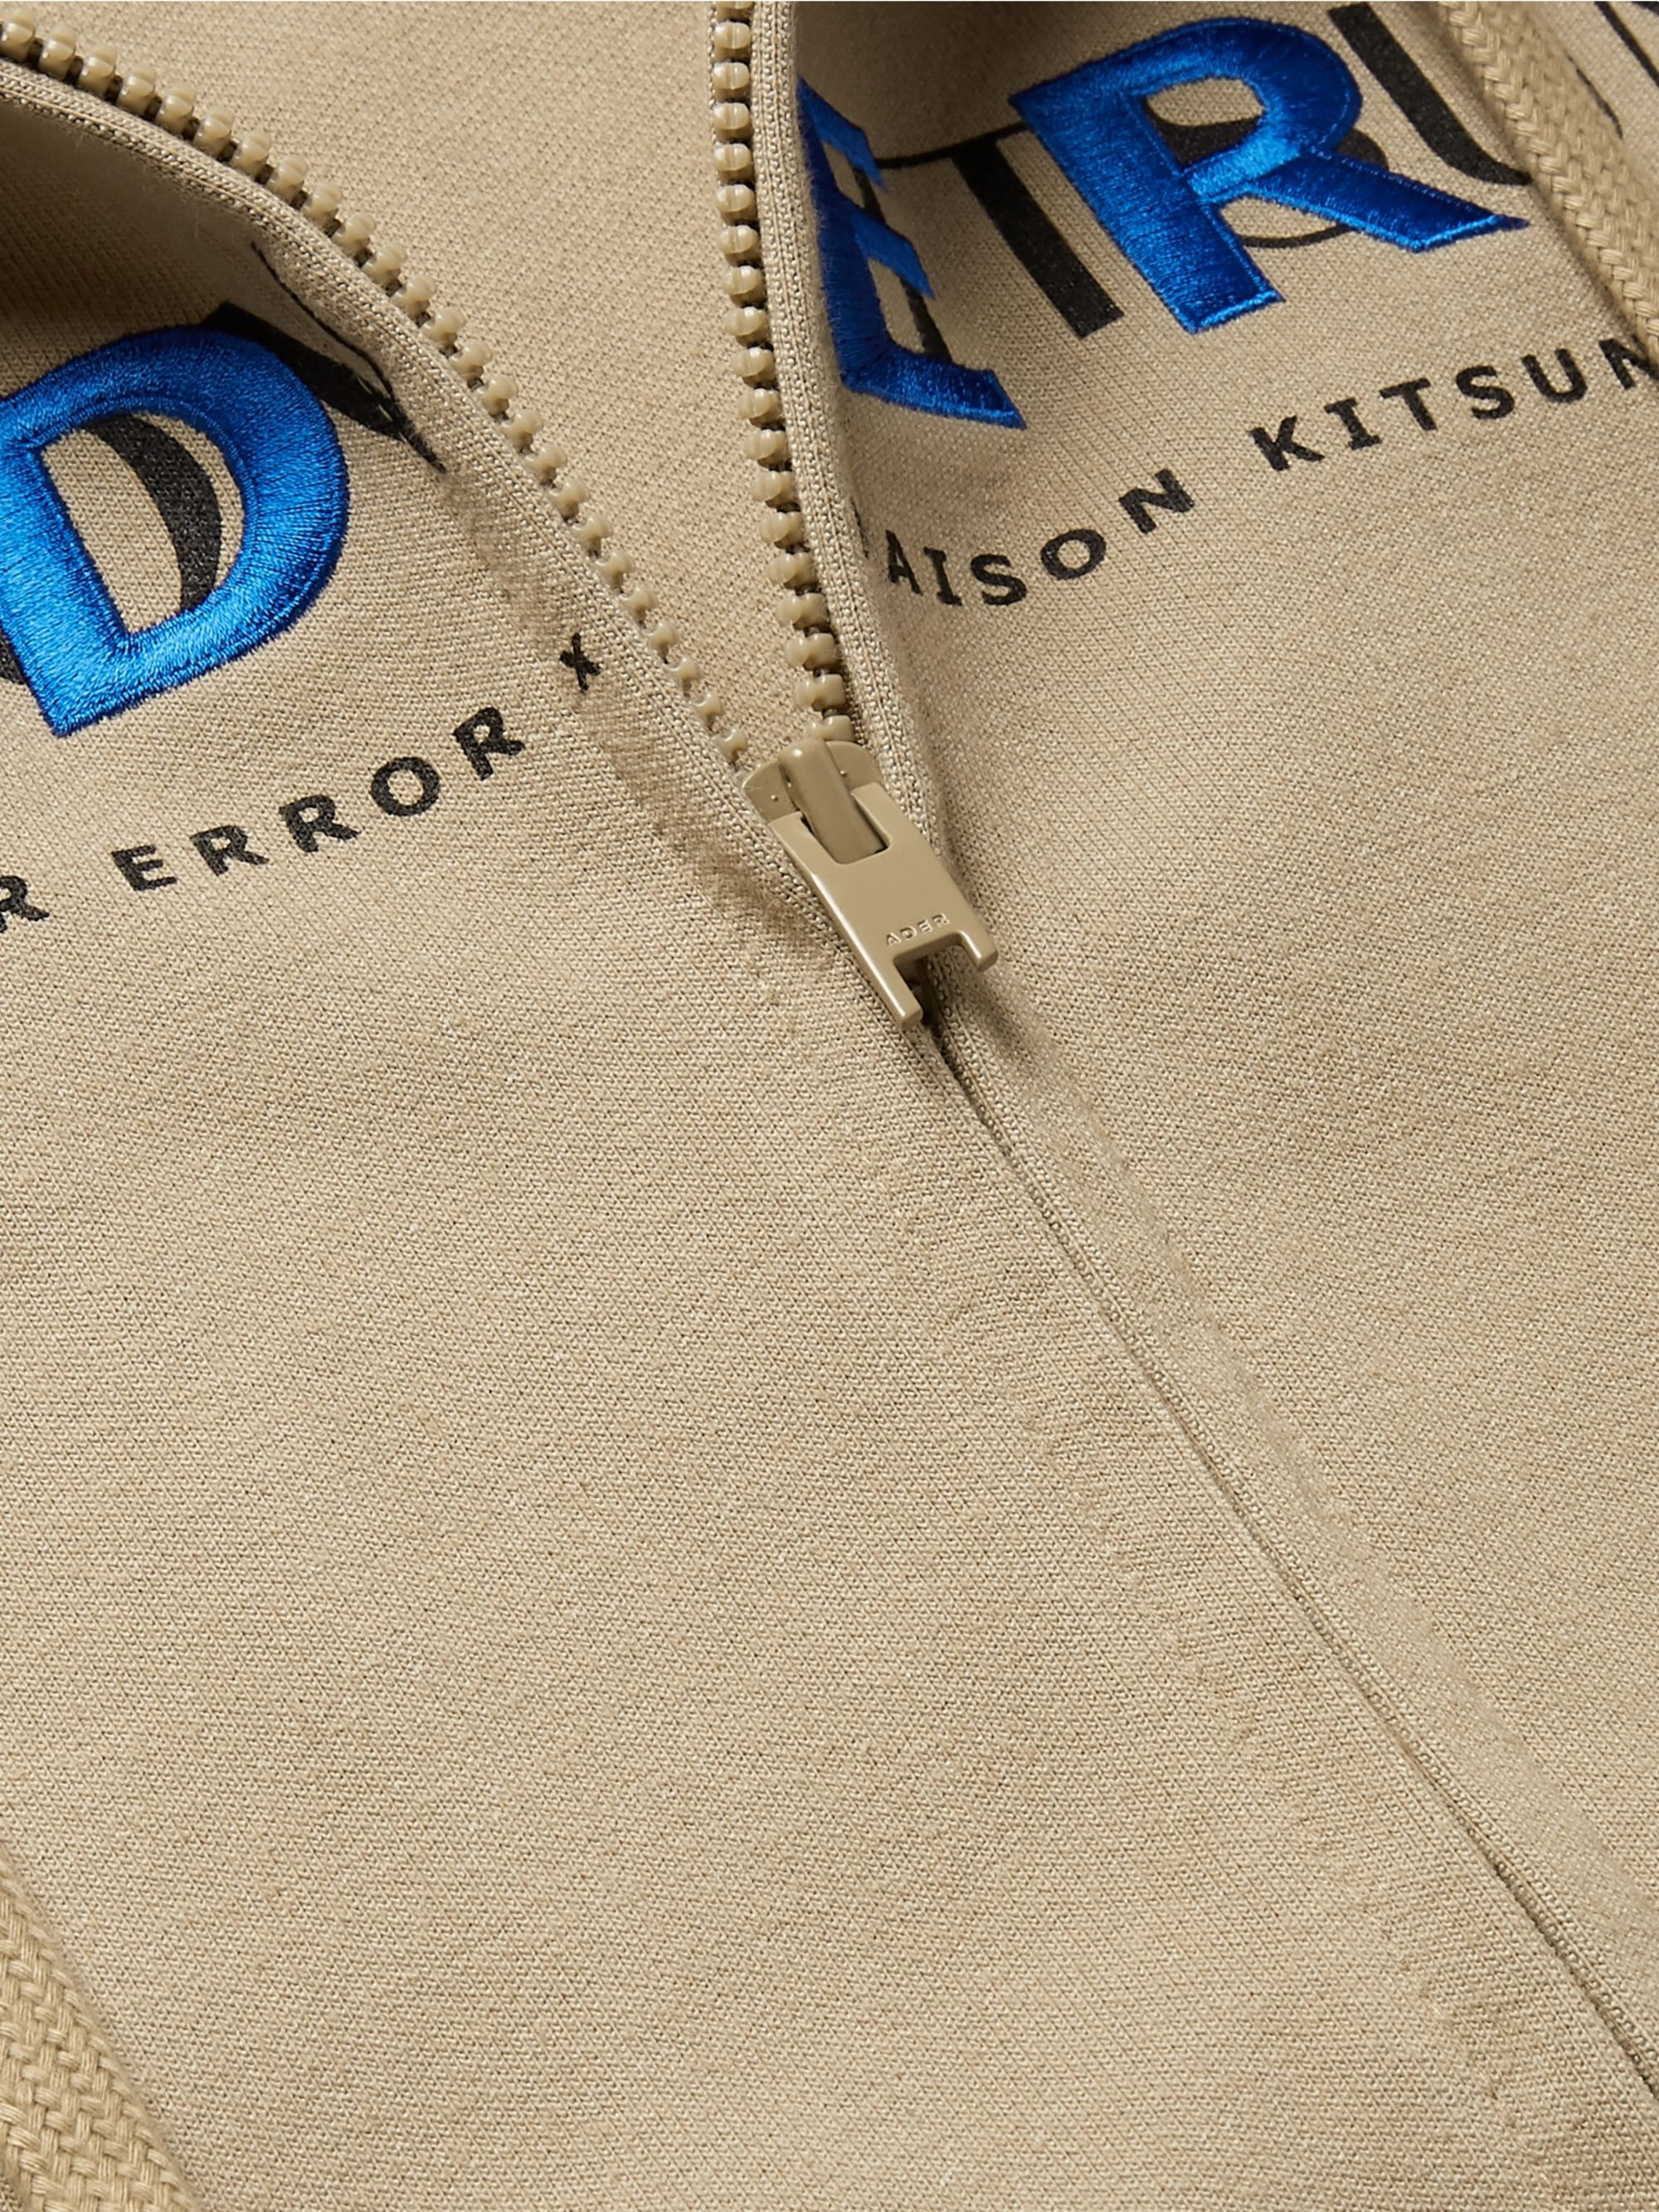 Maison Kitsuné + ADER error Oversized Logo-Print Cotton-Blend Jersey Zip-Up Hoodie